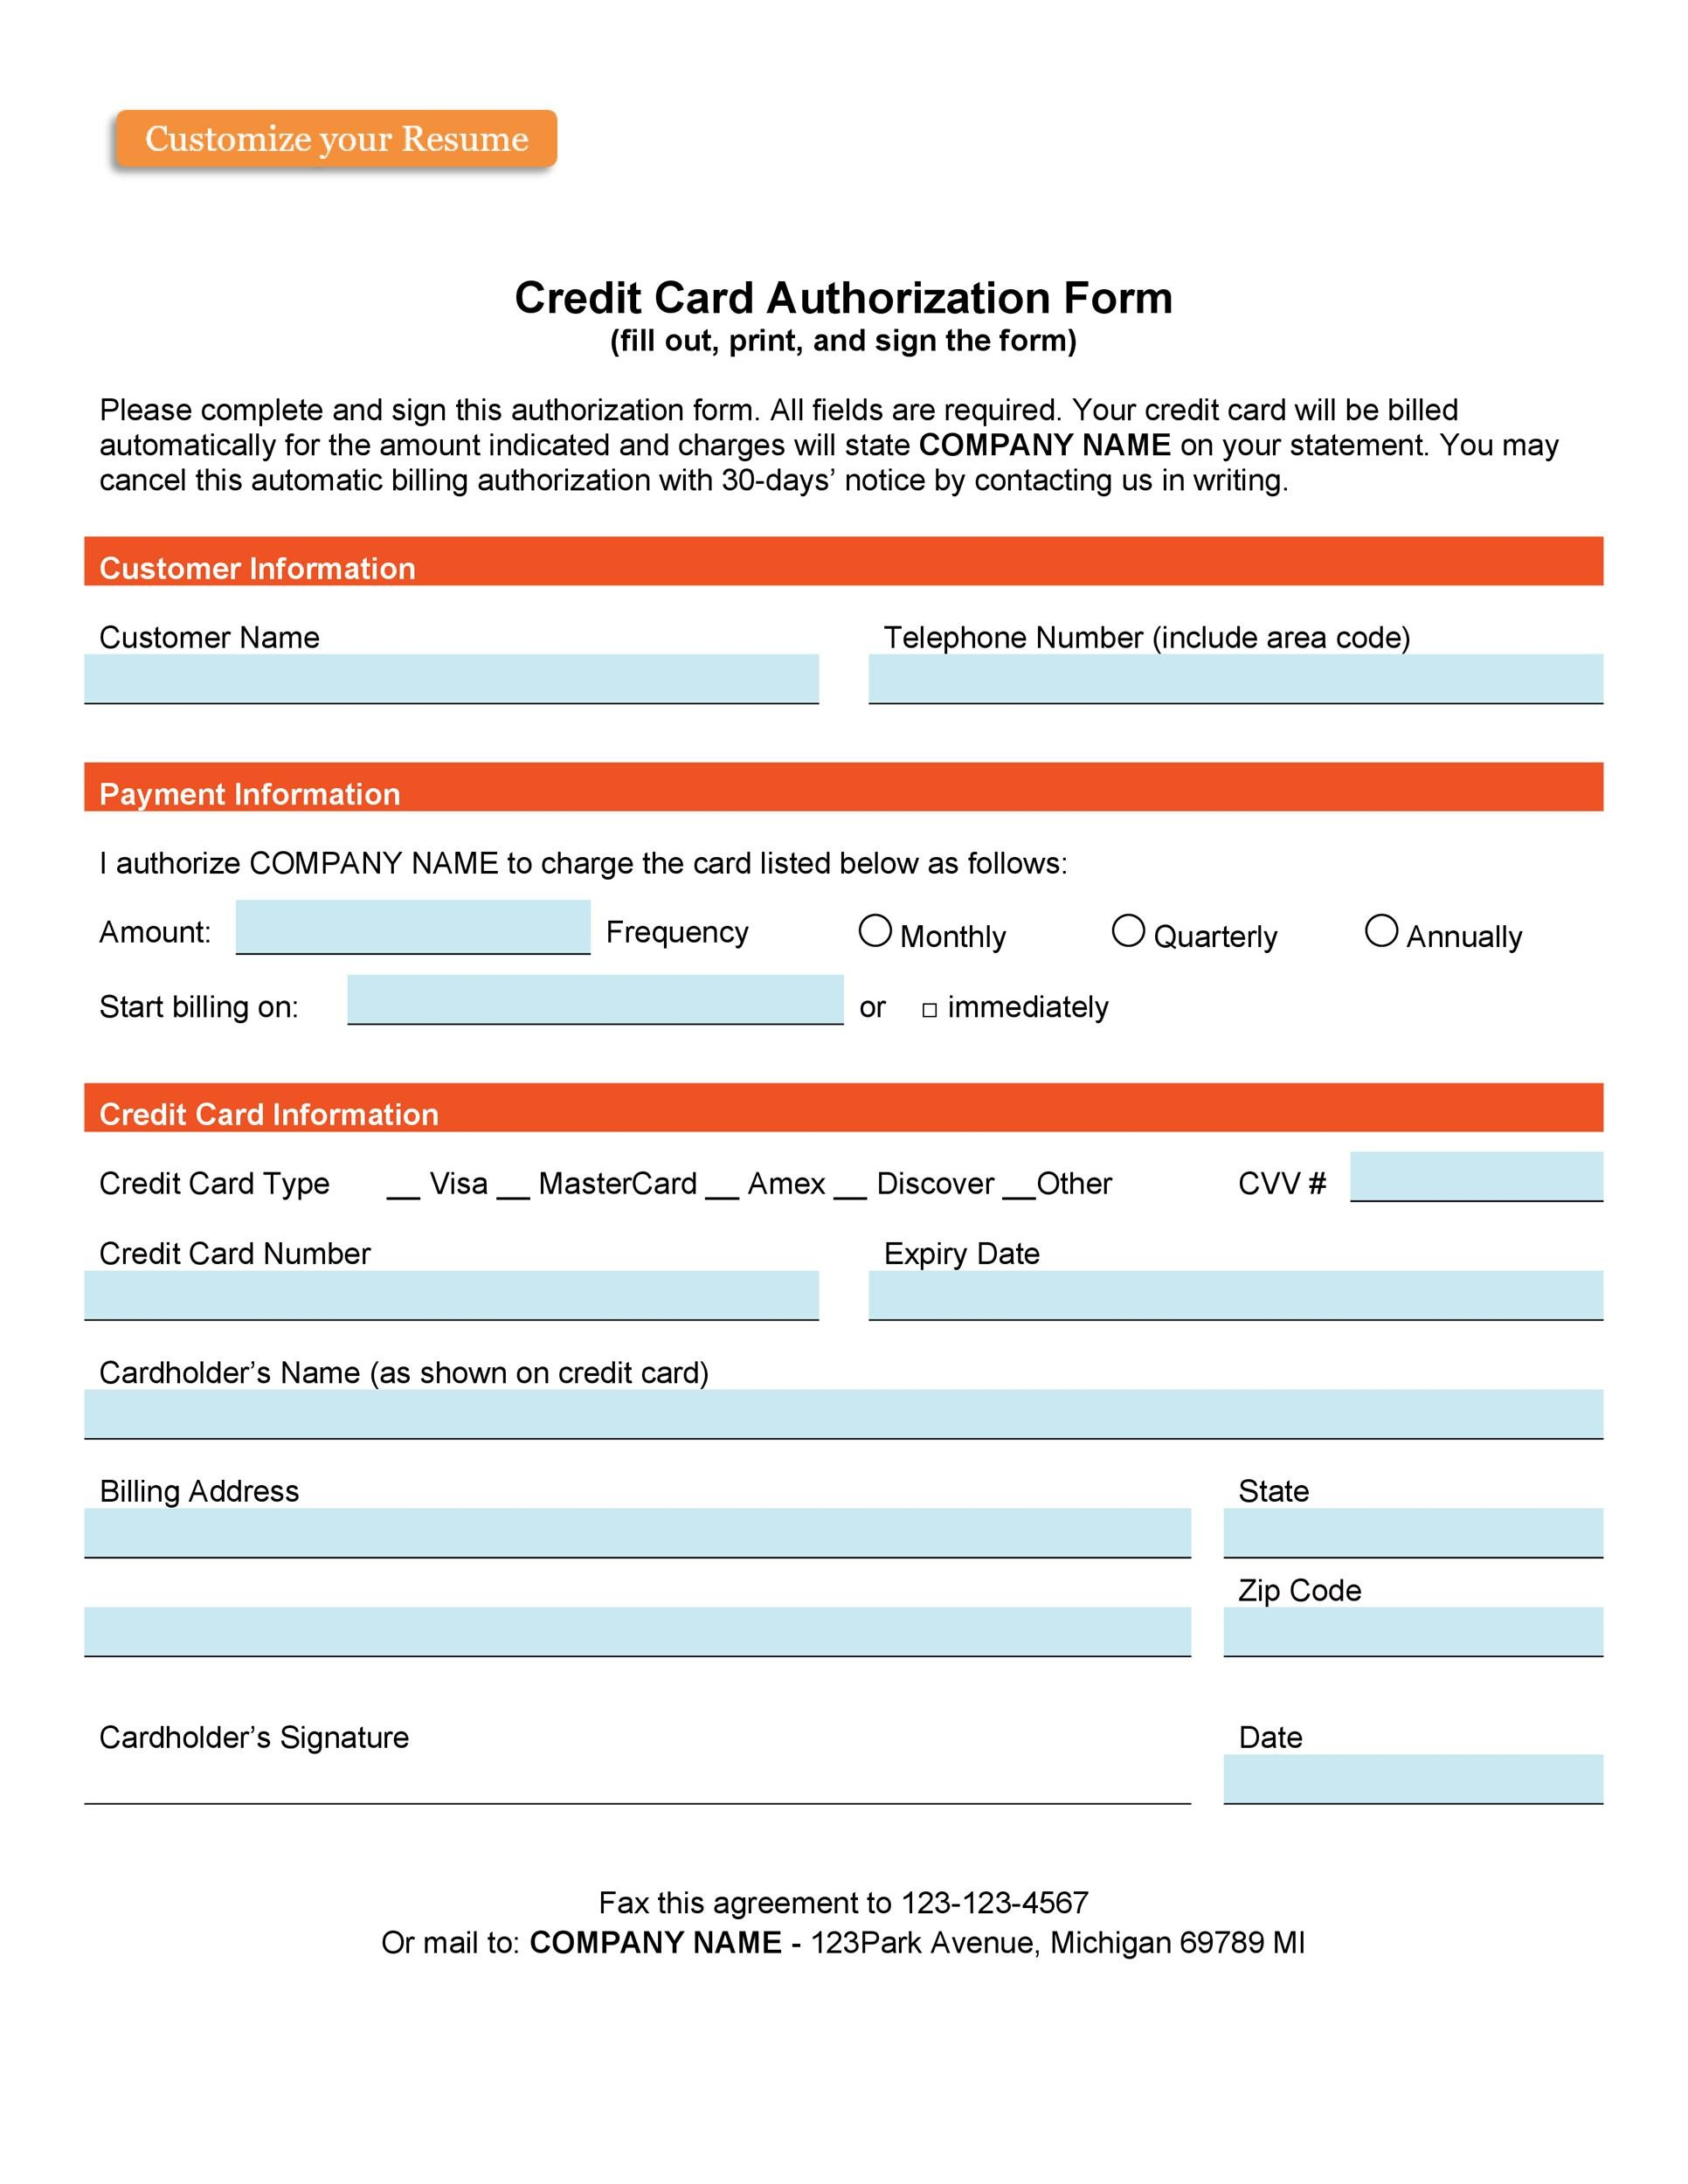 Credit Card Authorization Forms